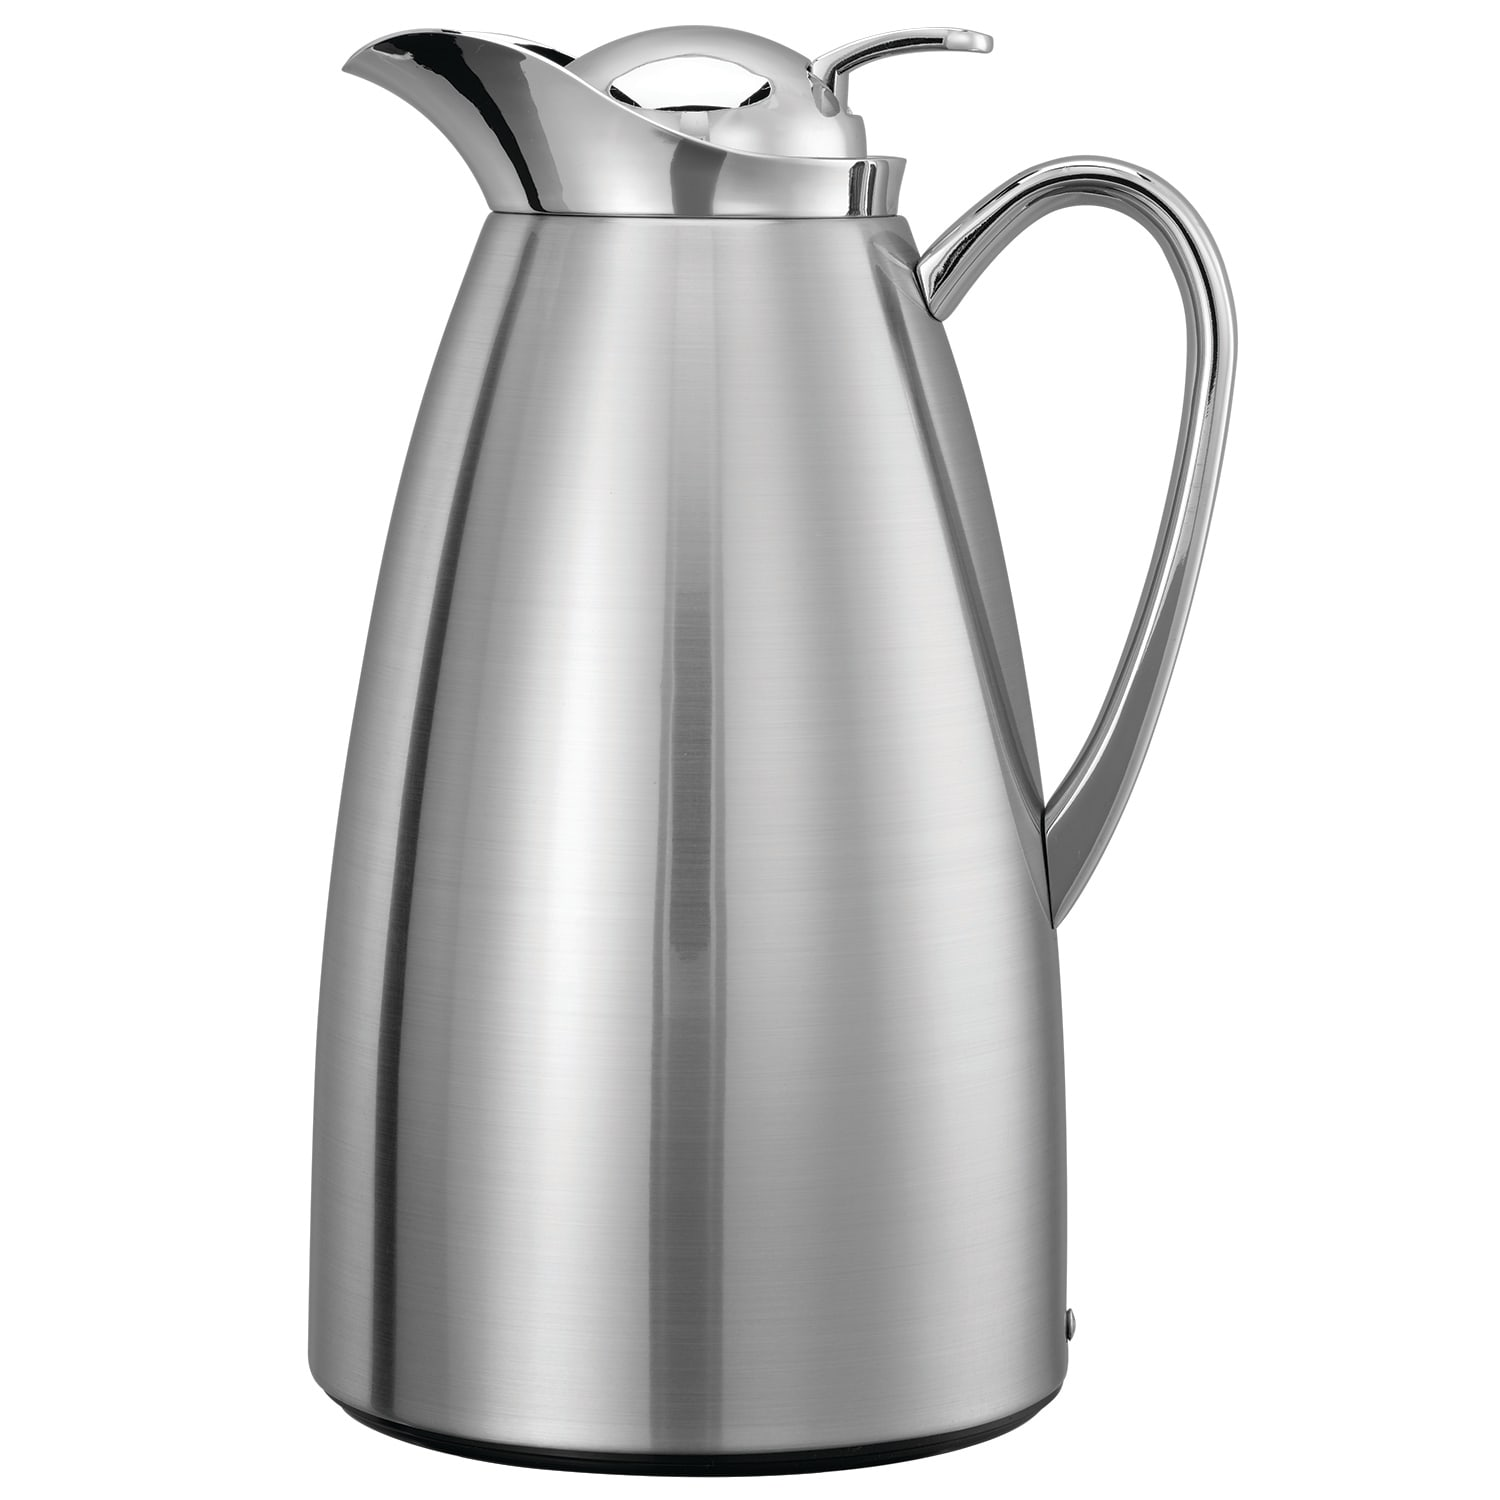 Service Ideas CJZS1BS 1 liter Coffee Server w/ Stainless Interior, Brushed Stainless